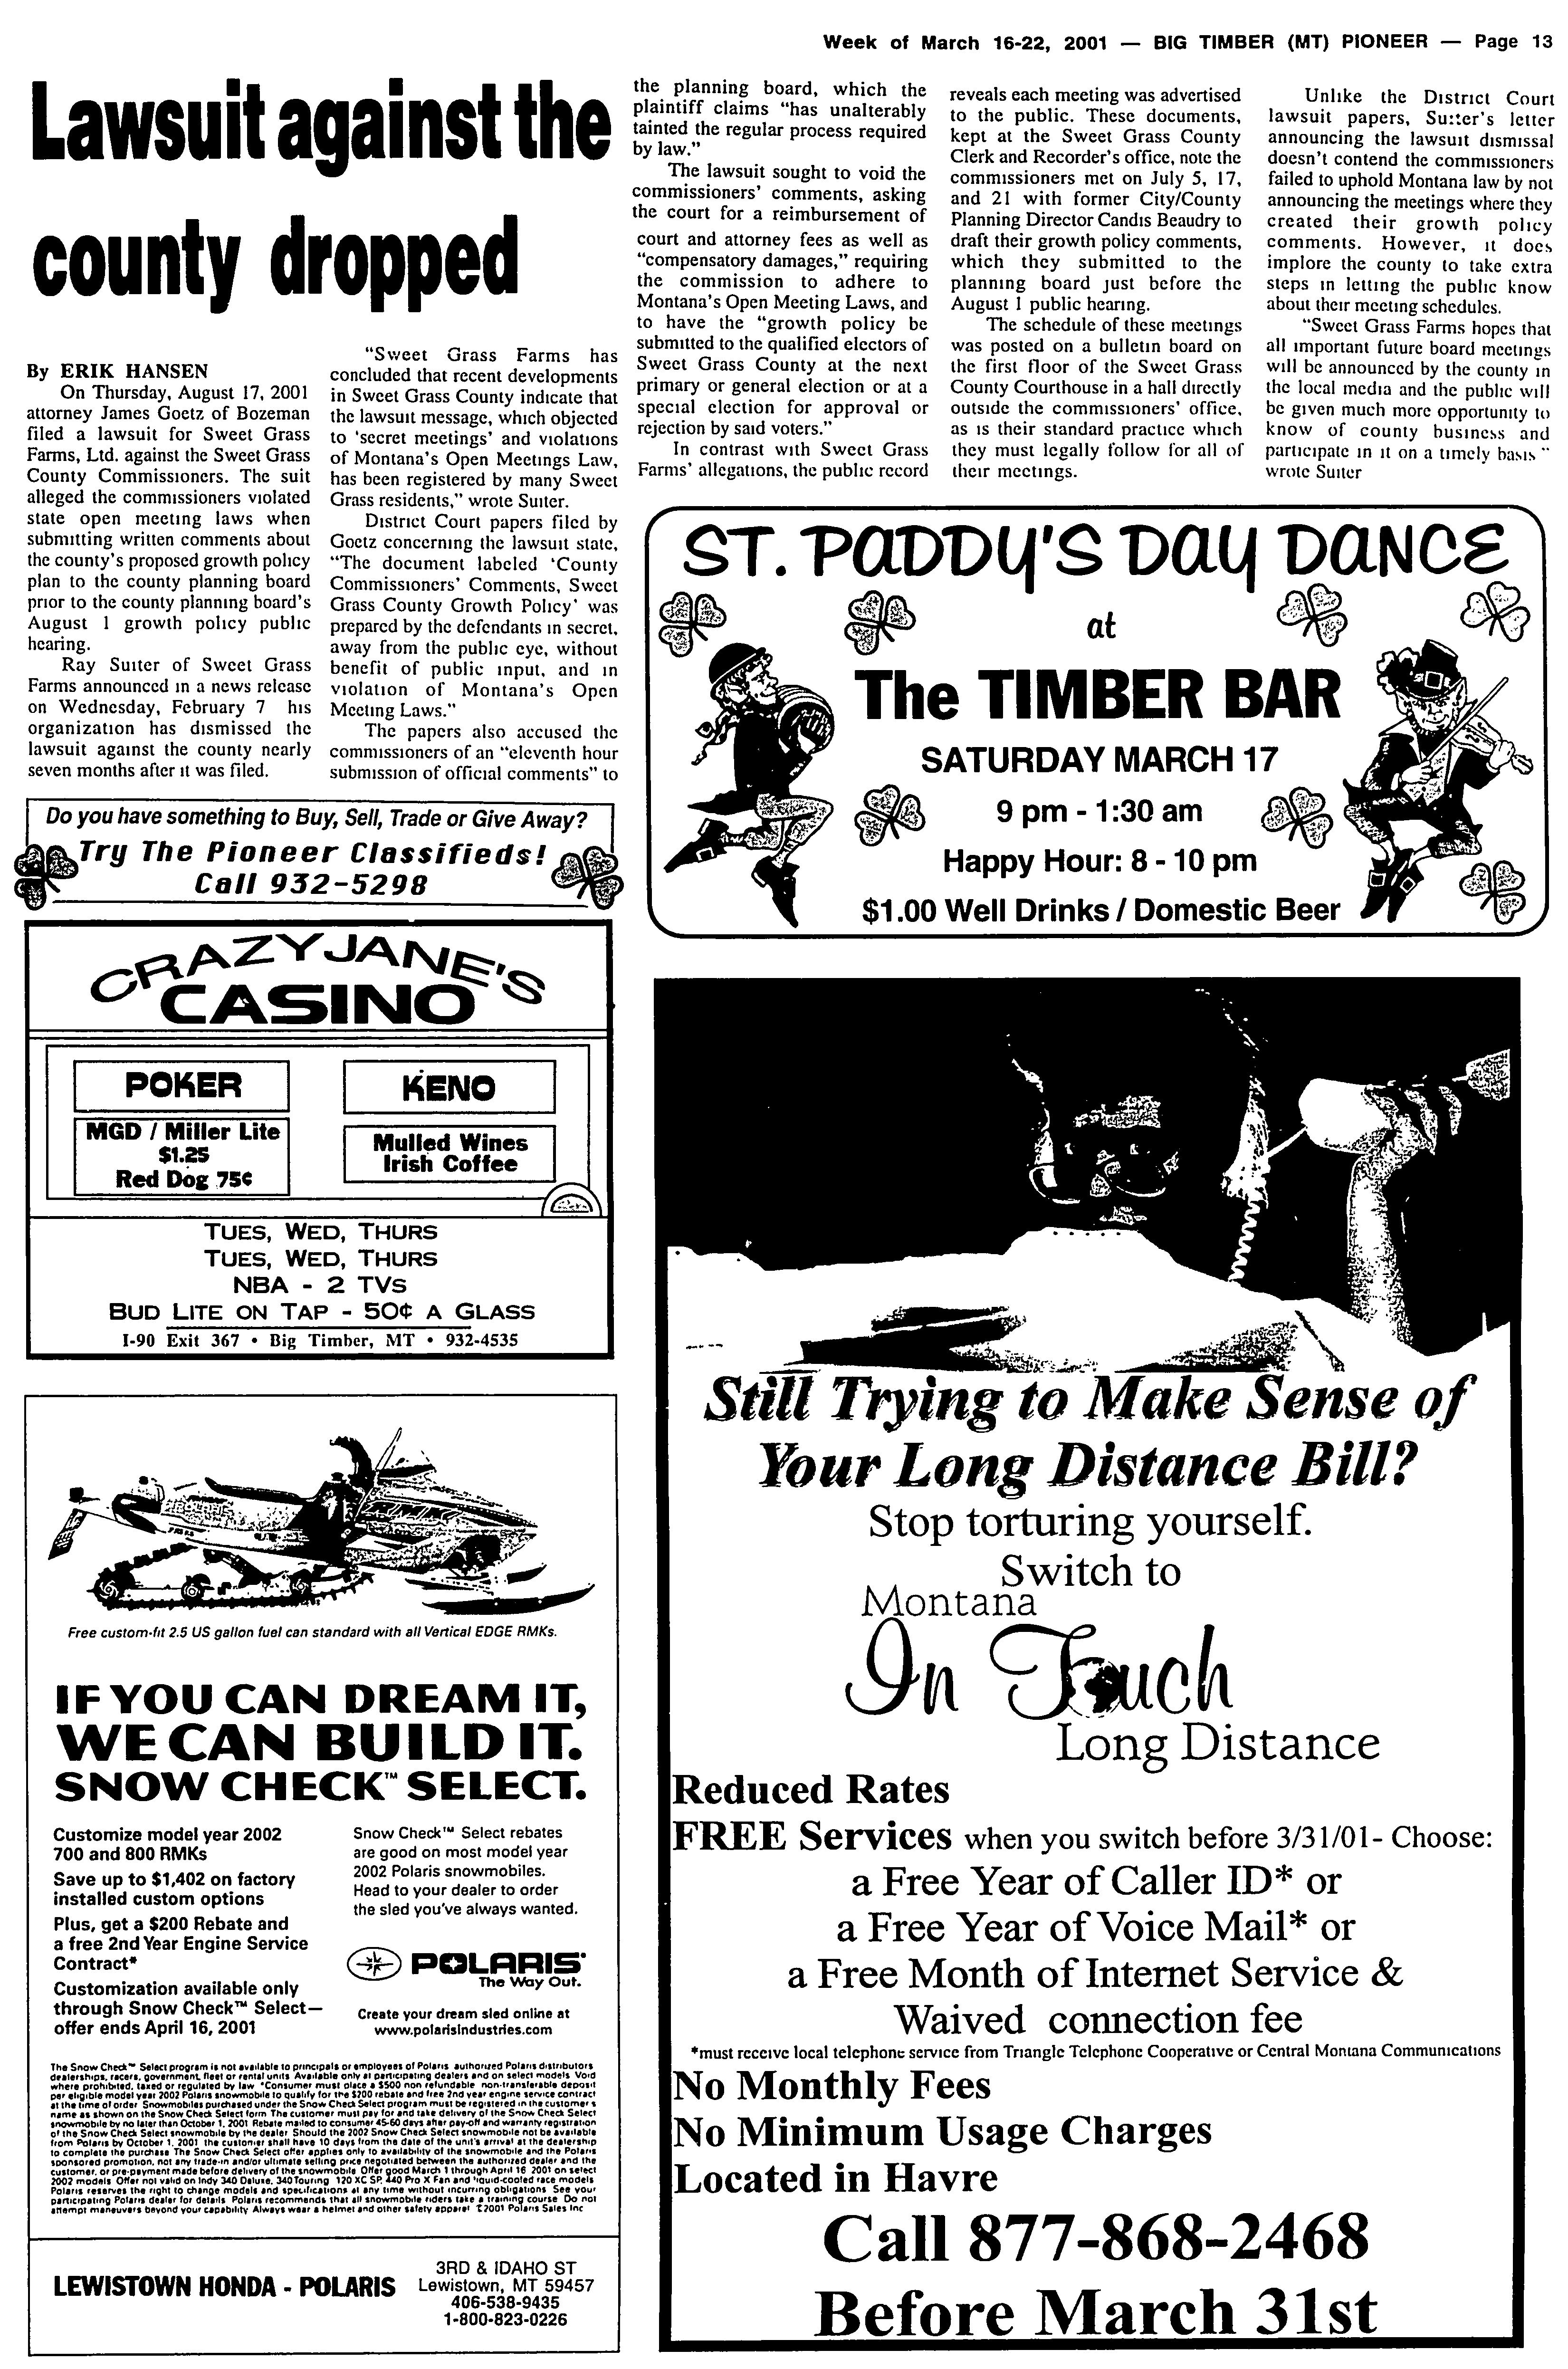 The Big Timber Pioneer (Big Timber, Mont ) 1983-current, March 16